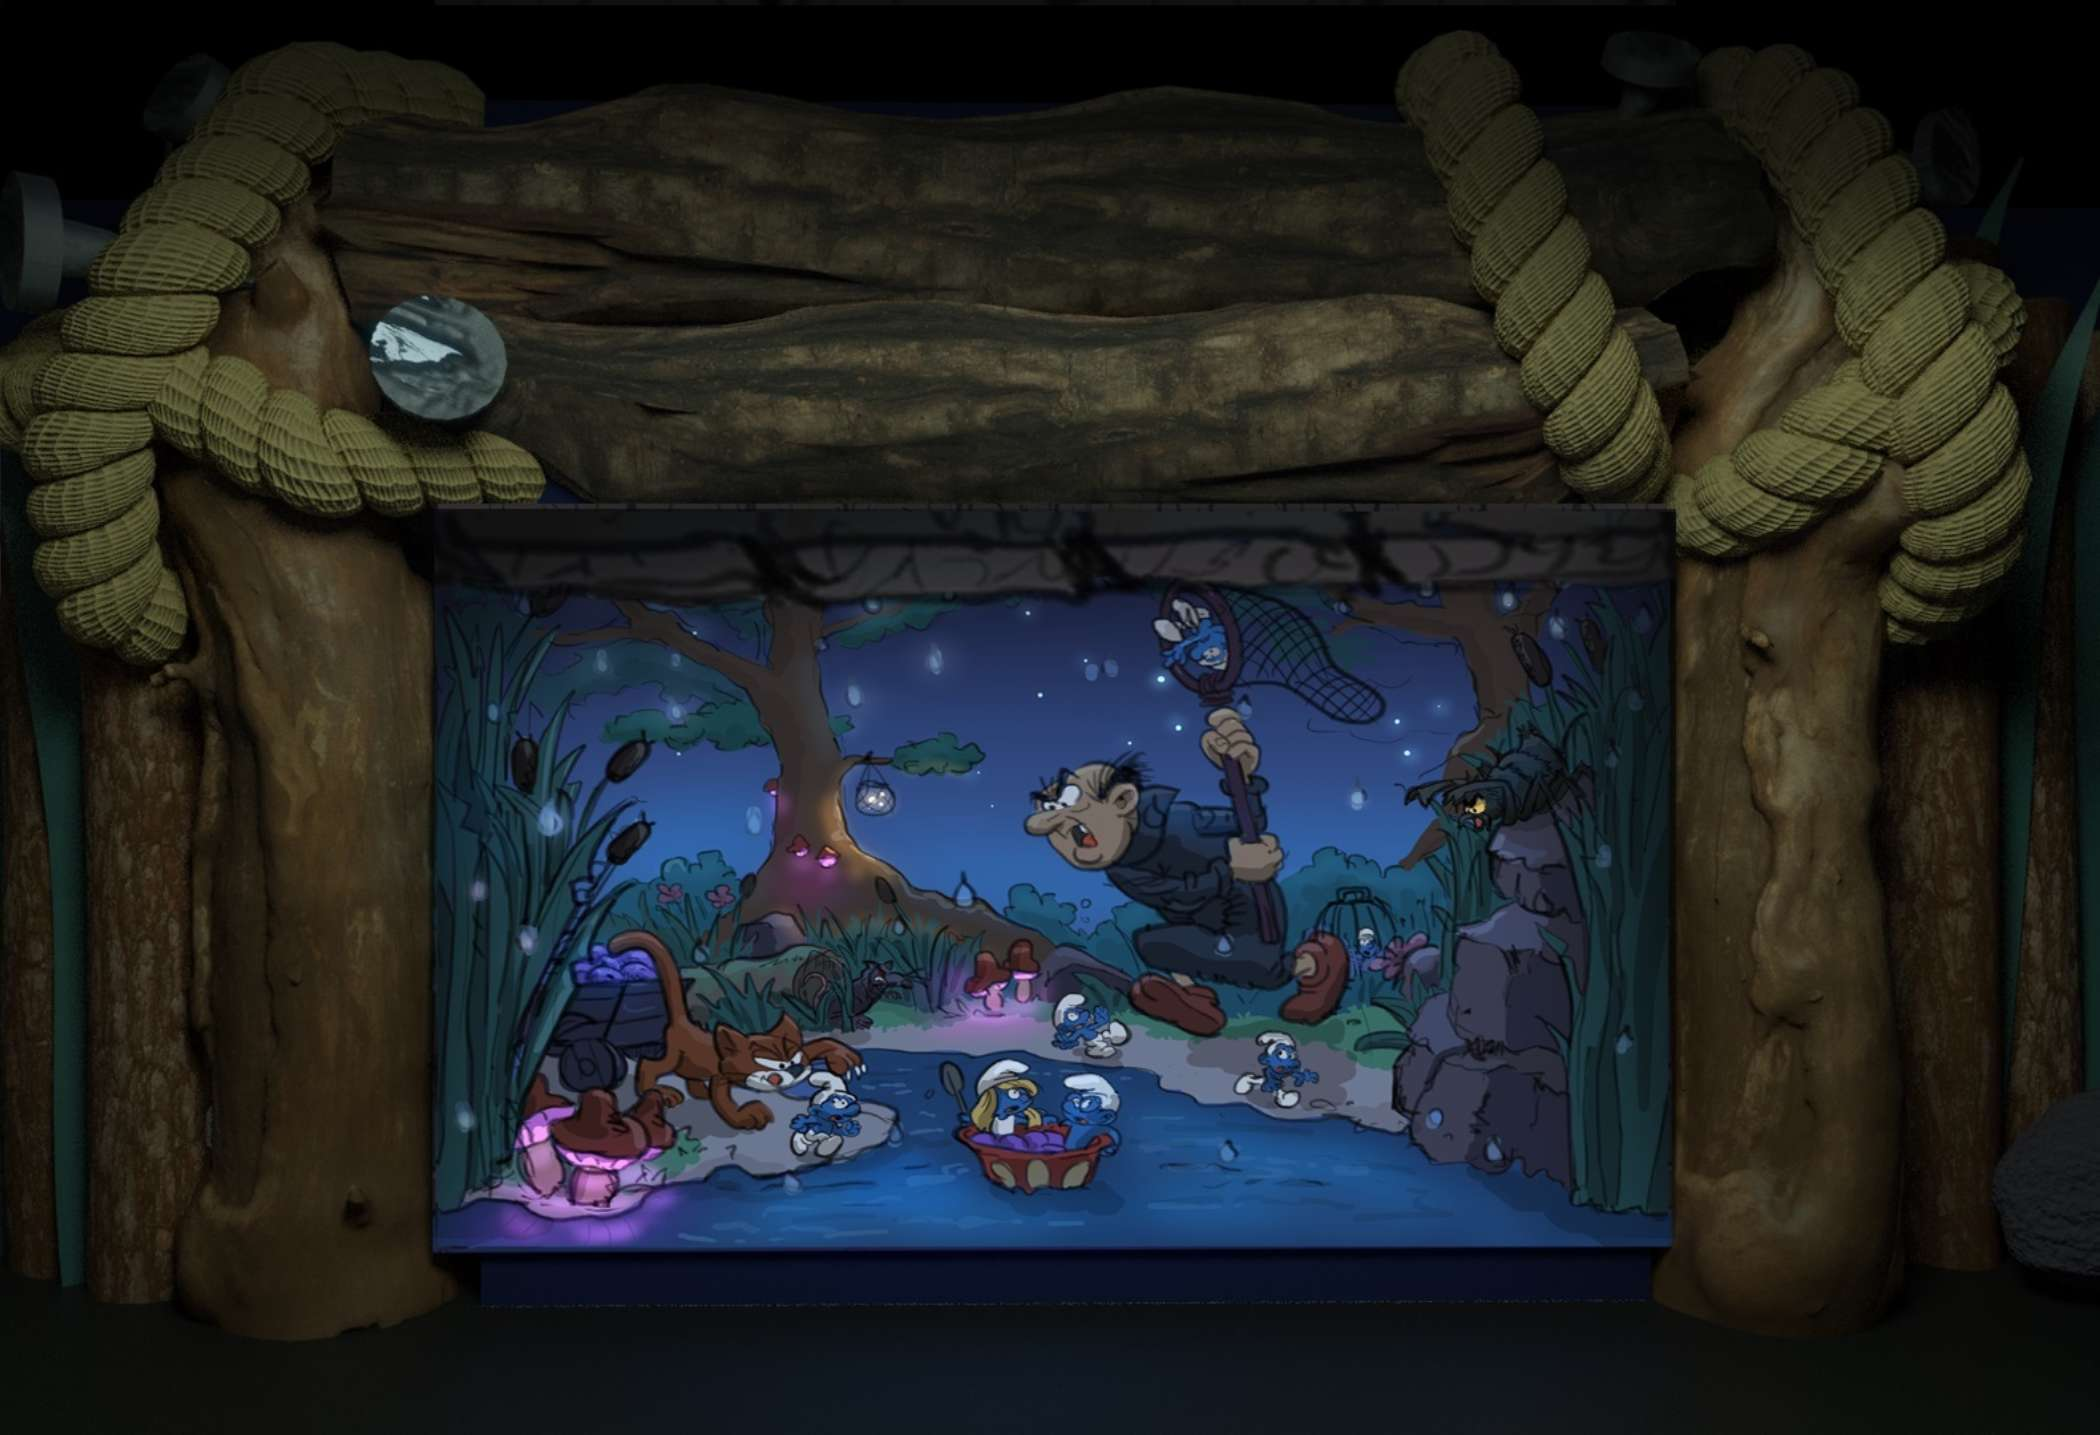 The Smurfs Concept Design Scene 2 Game